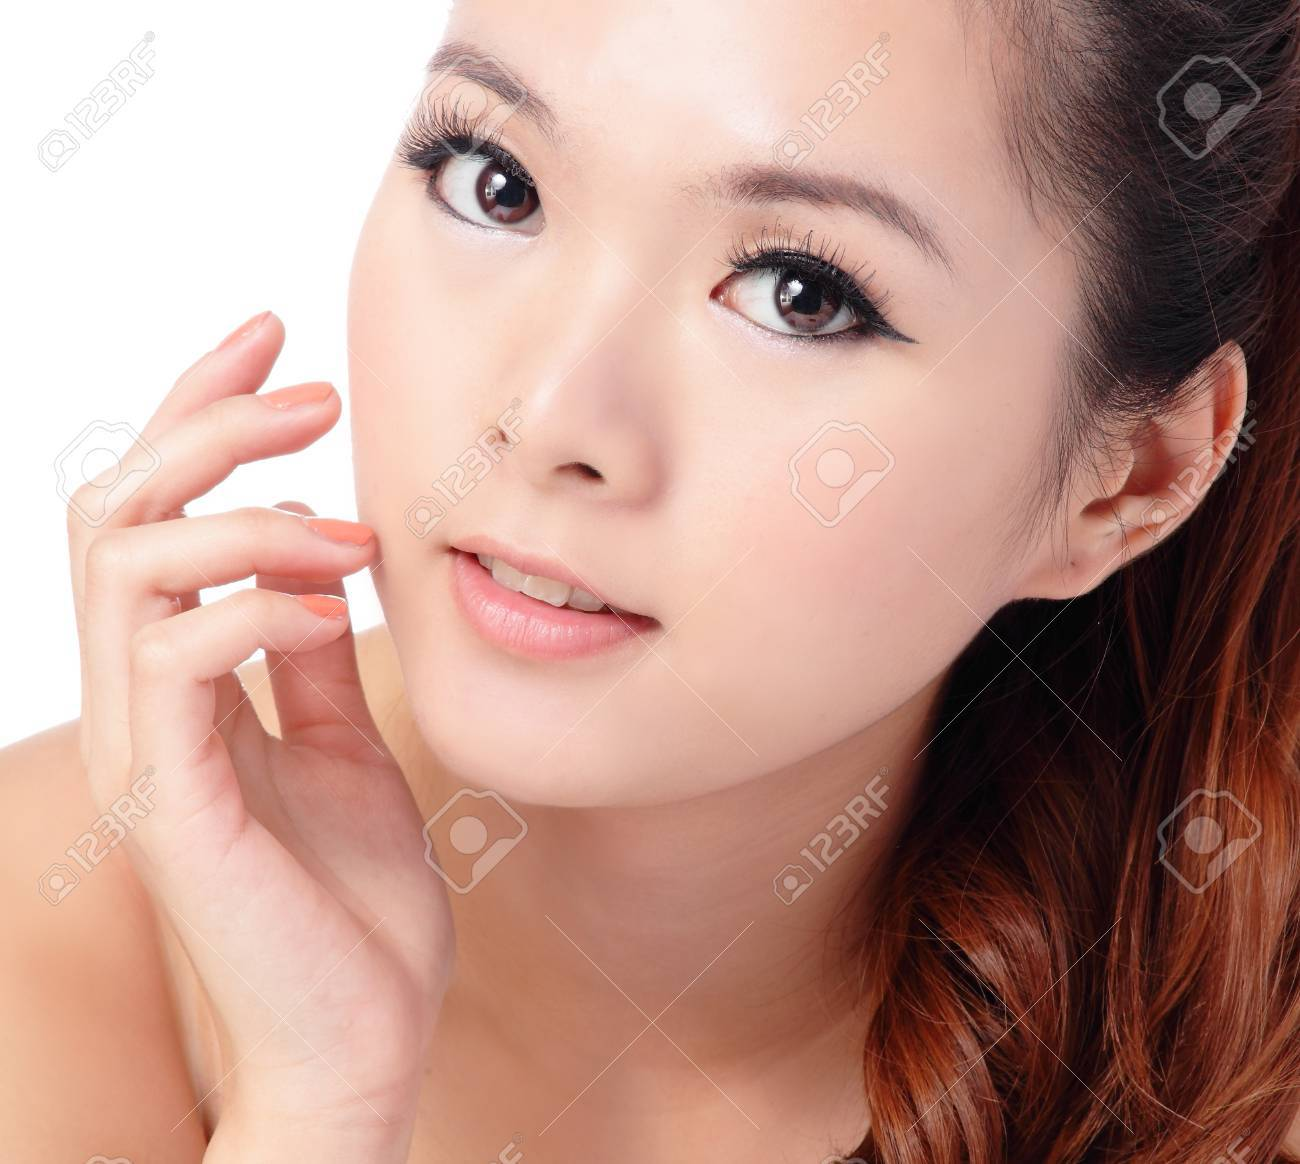 Asian beauty skin care woman smiling close-up, Beautiful young woman touching her face looking to the side. Isolated on white background Stock Photo - 12209035